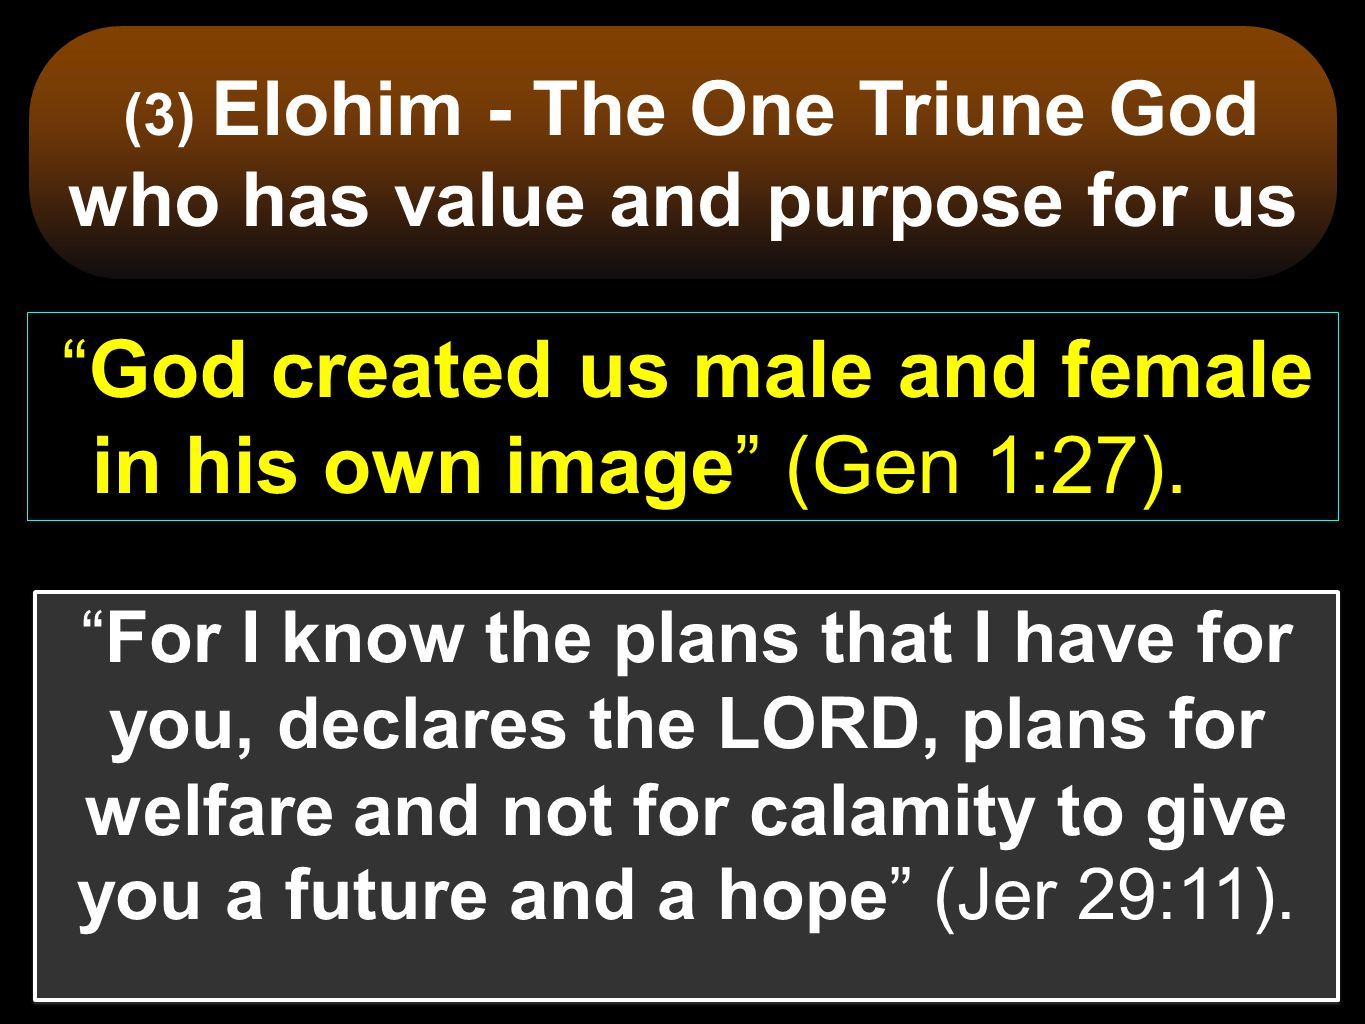 (3) Elohim - The One Triune God who has value and purpose for us